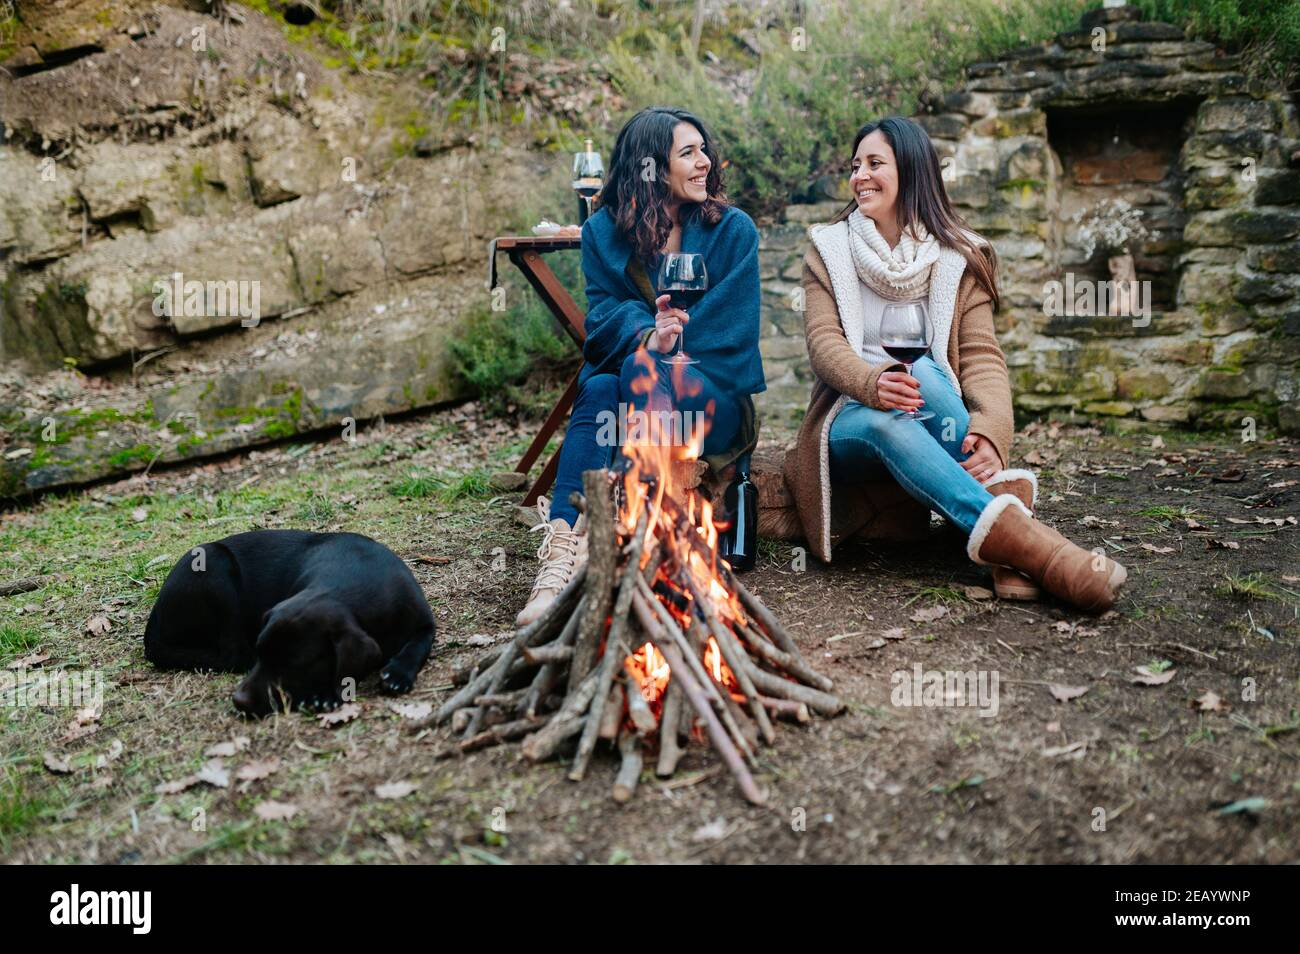 young happy women talking together while drinking glass of red wine. Females warming next to the fire with dog resting. Campfire, outdoors activities Stock Photo